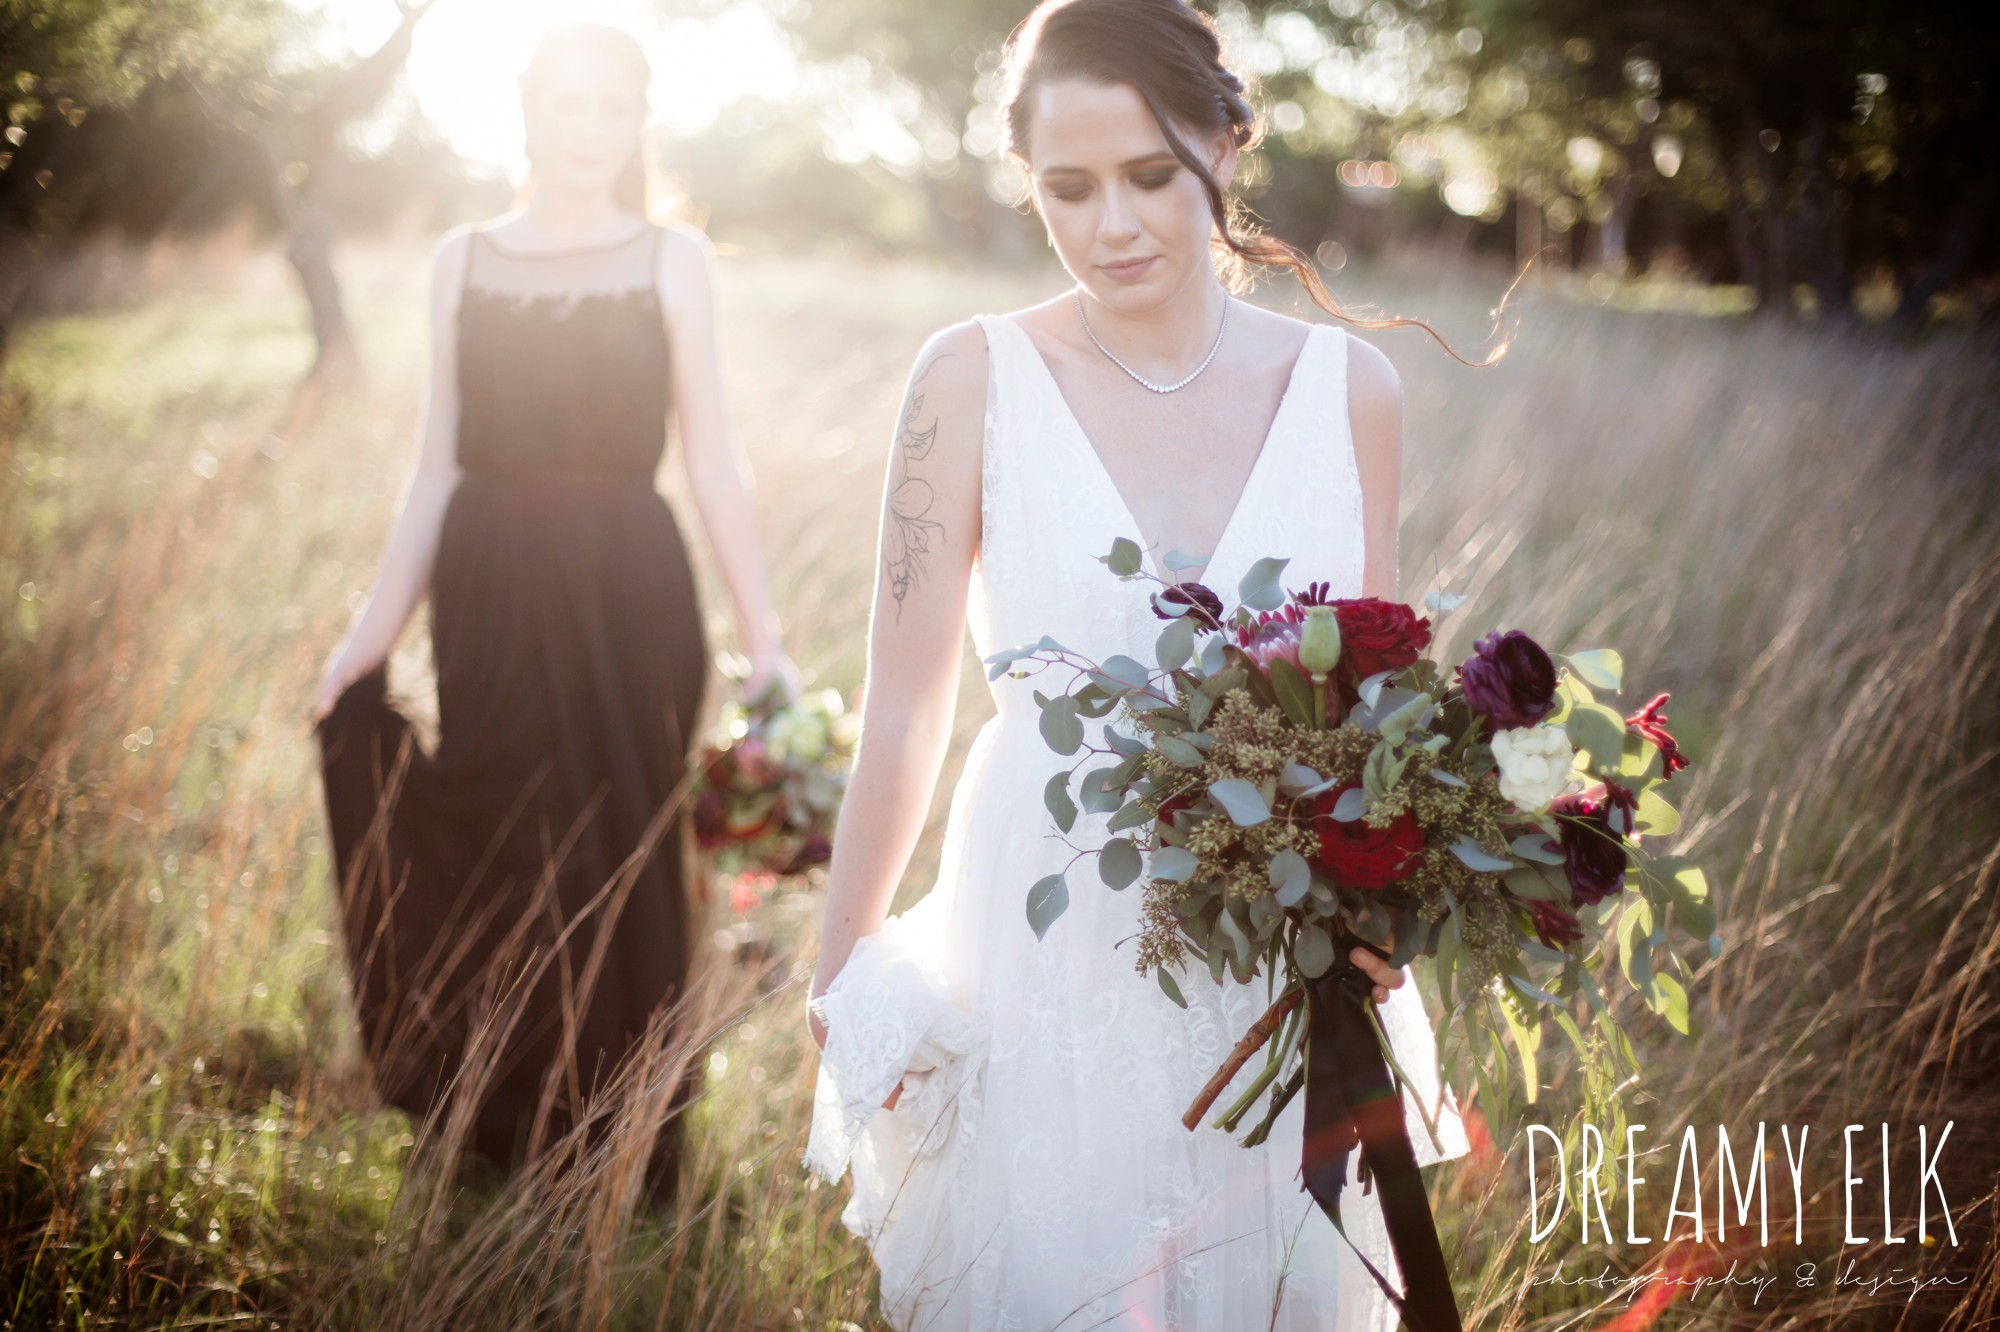 the cedars ranch, libby cole creations, saint isabel bridal, melange bridal, moody rich delicate marfa inspired burgundy maroon black white spring styled wedding photo shoot {dreamy elk photography and design}